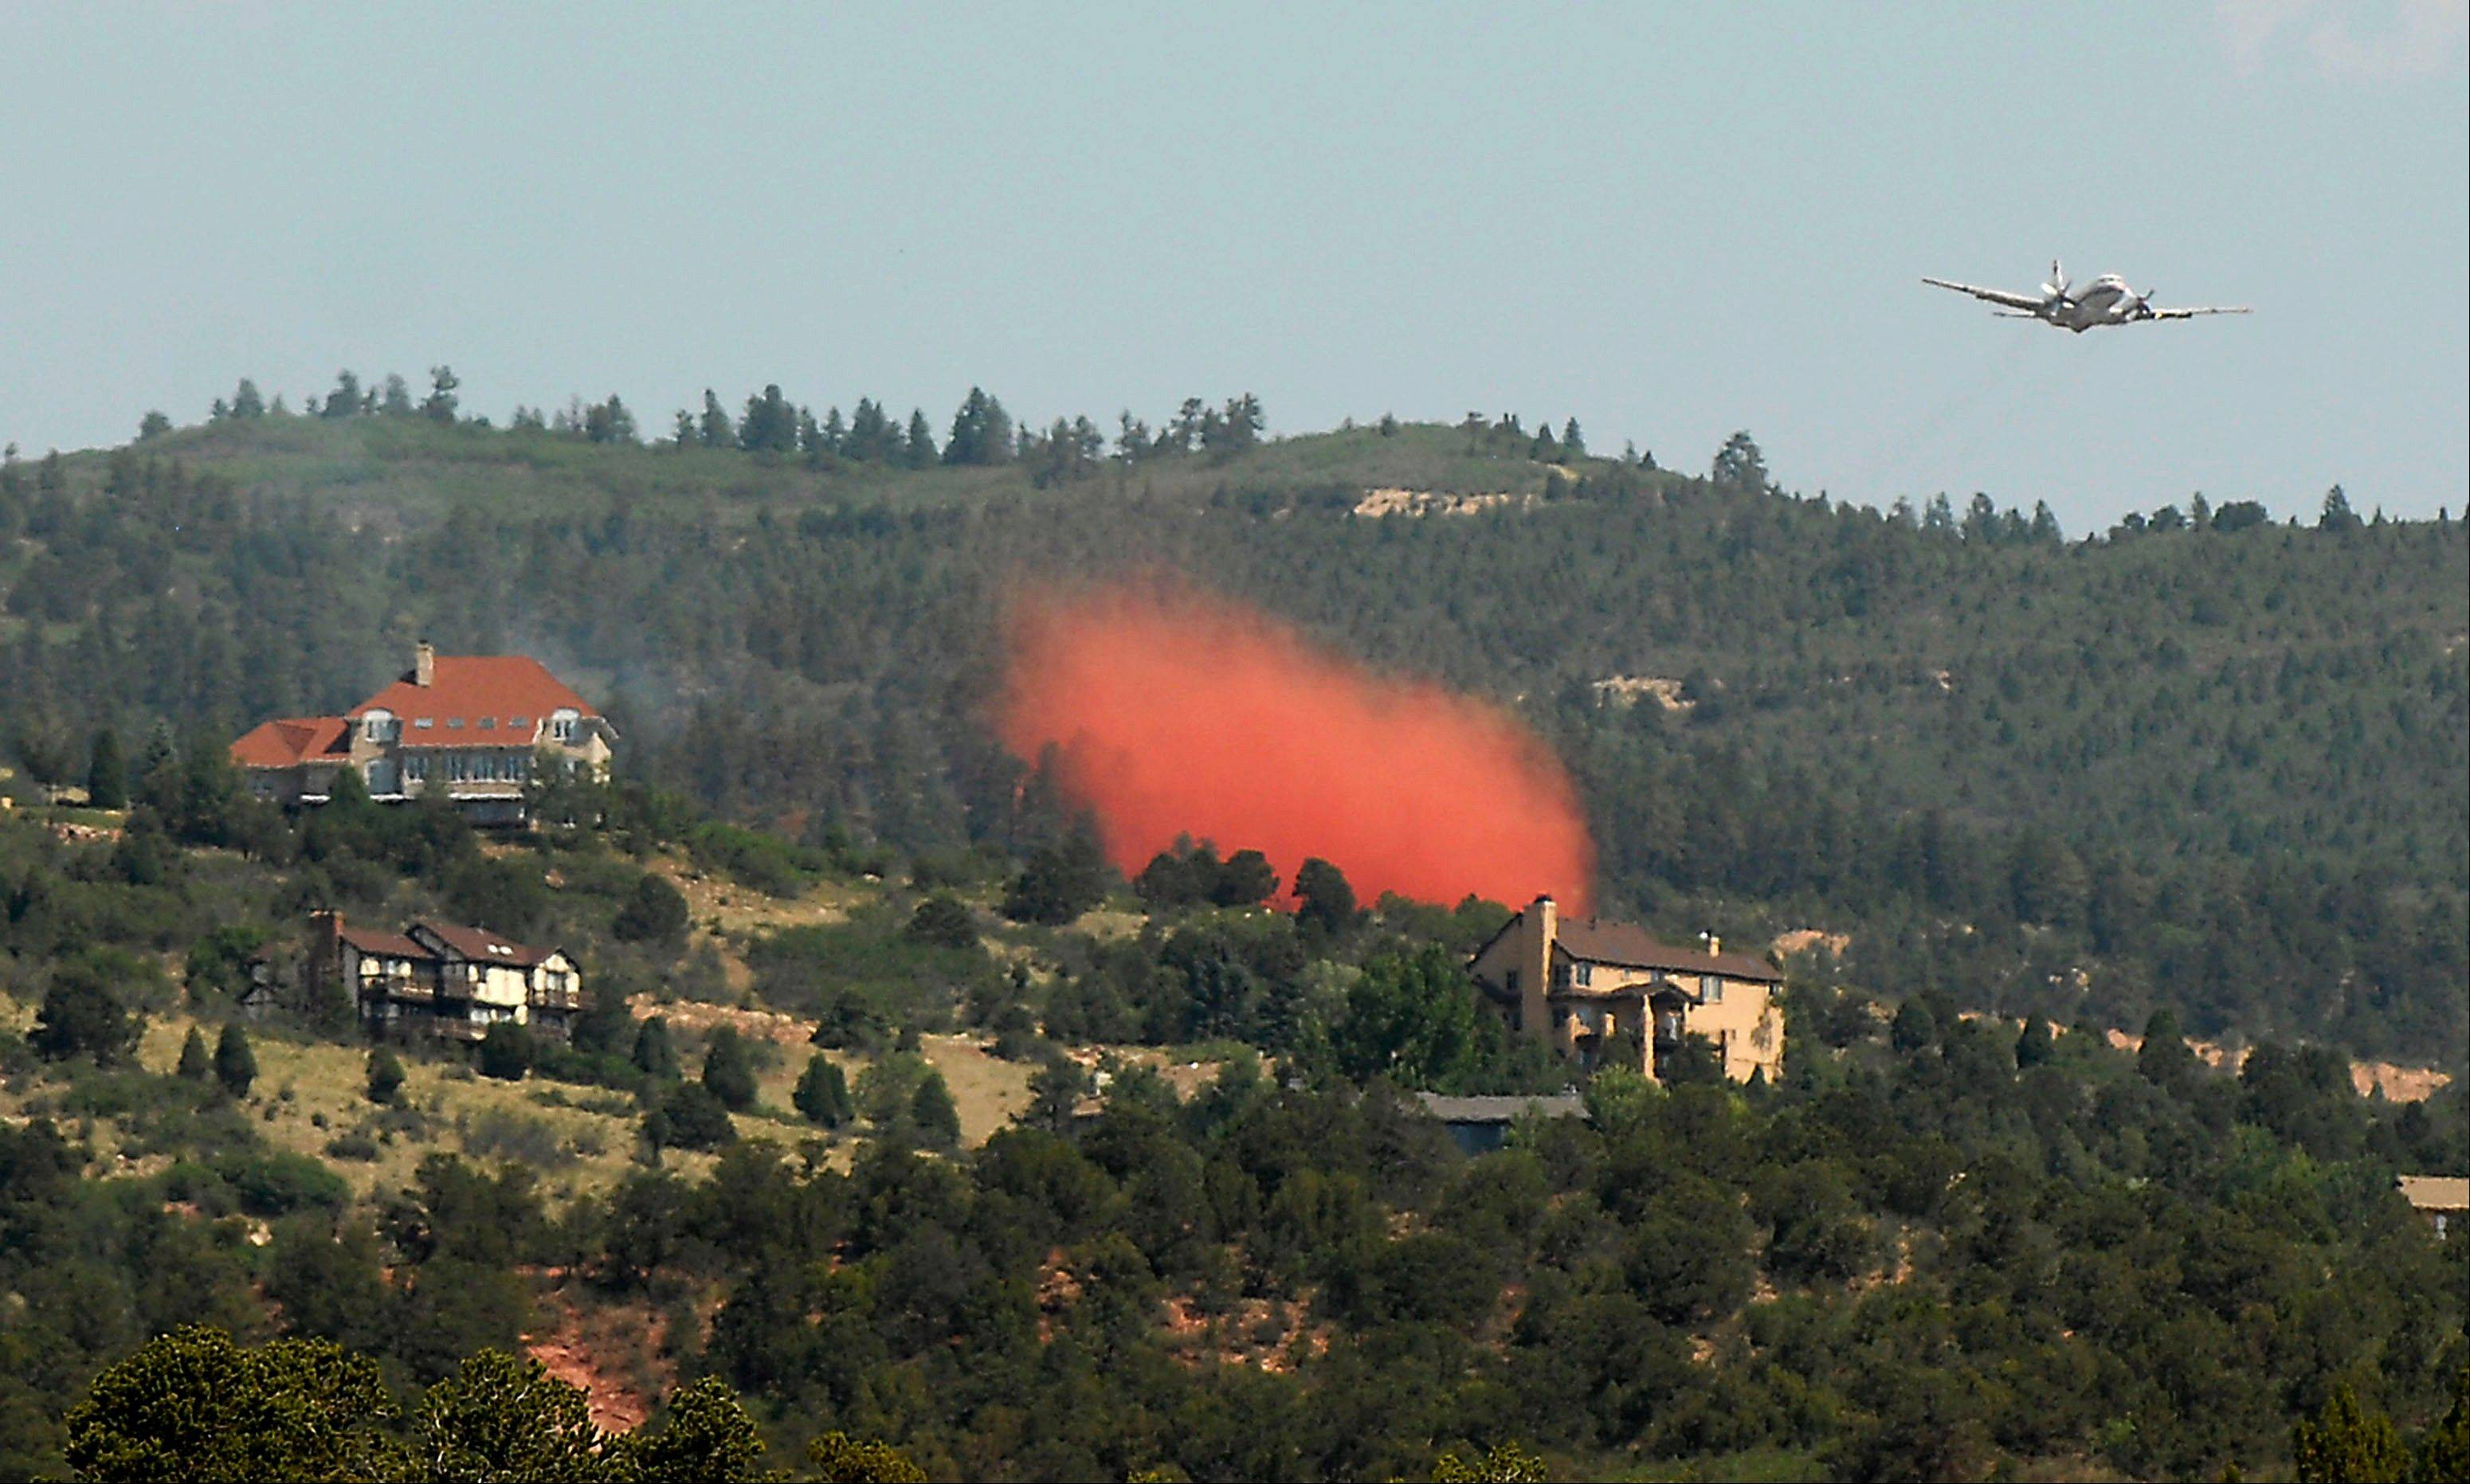 A helicopter drops water on a wildfire near Colorado Springs, Colo., on Sunday, June 24, 2012. The fire erupted and grew out of control to more than 3 square miles early Sunday, prompting the evacuation of more than 11,000 residents and an unknown number of tourists. On Saturday, a blaze destroyed 21 structures near the mountain community of Estes Park.